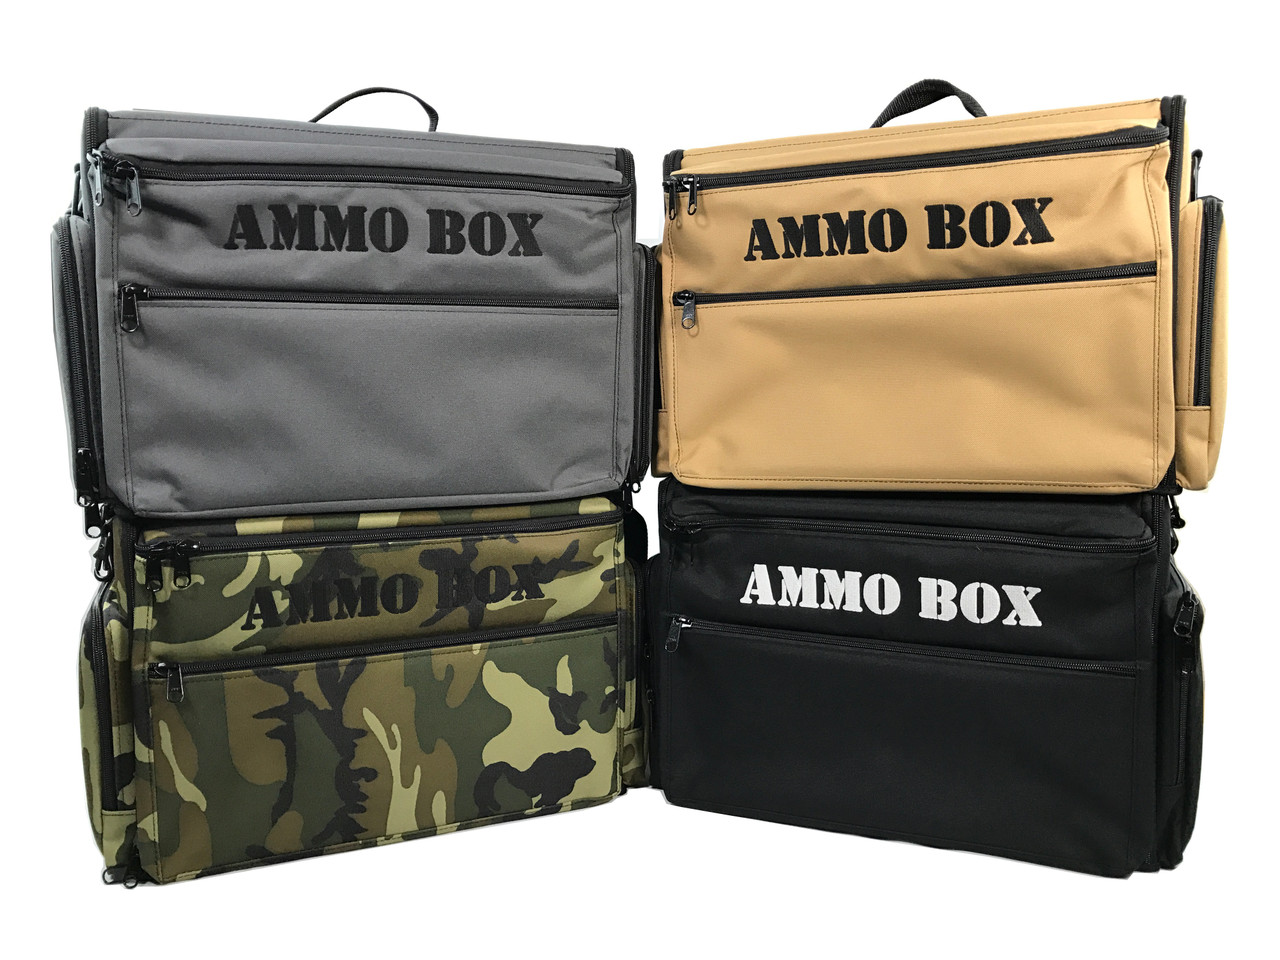 Ammo Box Bag